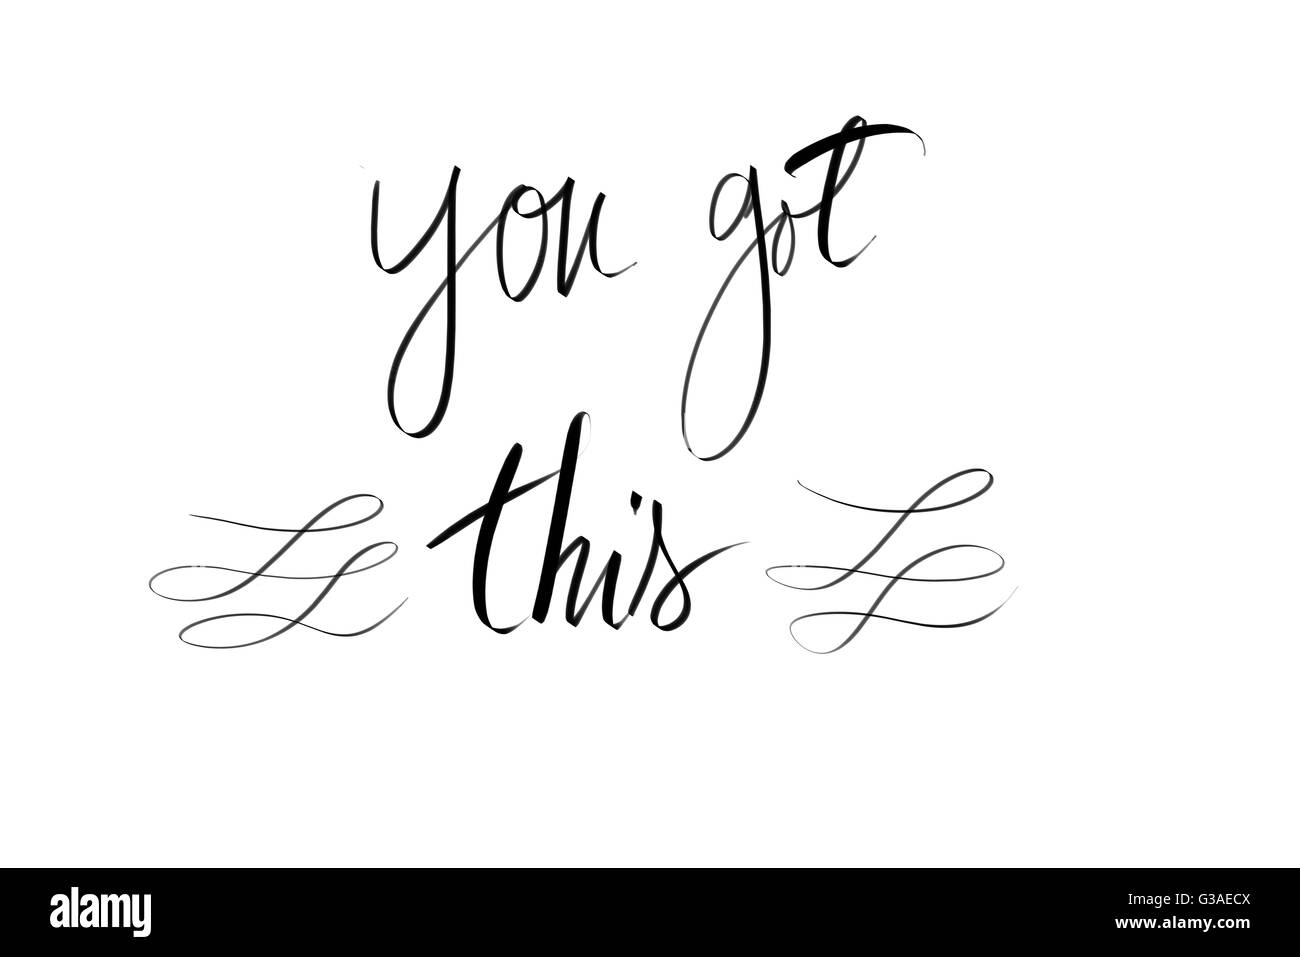 You Got This motivational quote. Authentic hand writing isolated over white background as graphic resource. - Stock Image